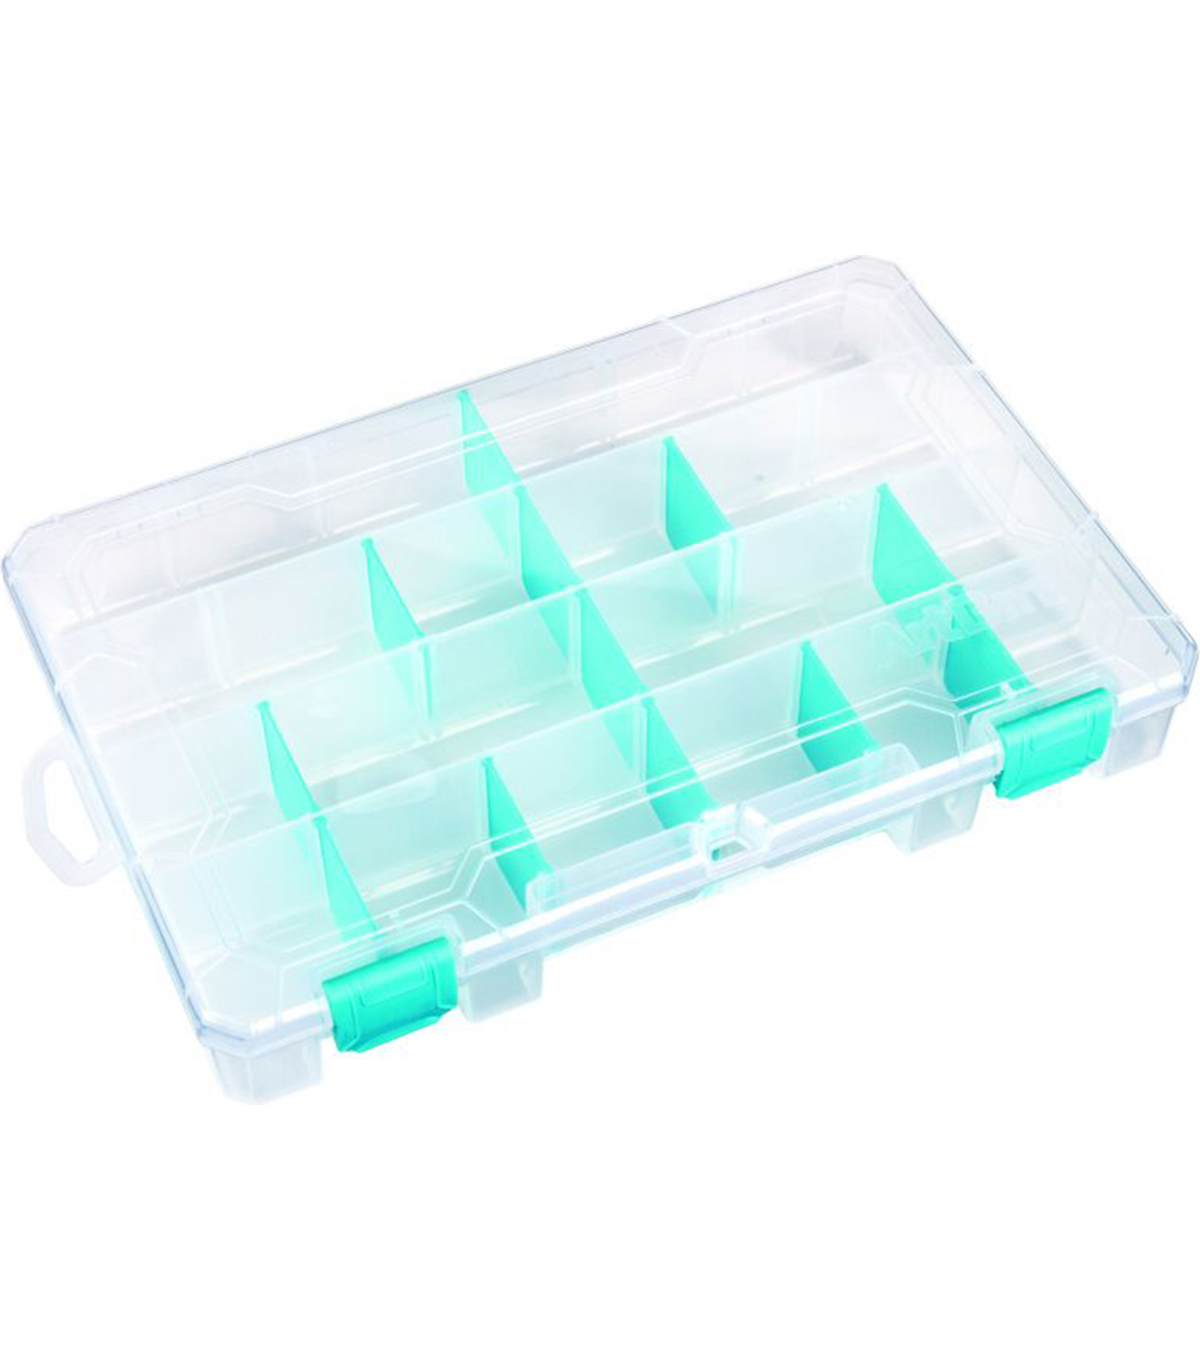 ArtBin Tarnish Inhibitor Solutions Box 6-12 Compartments-11\u0022X7\u0022X1.75\u0022 Translucent